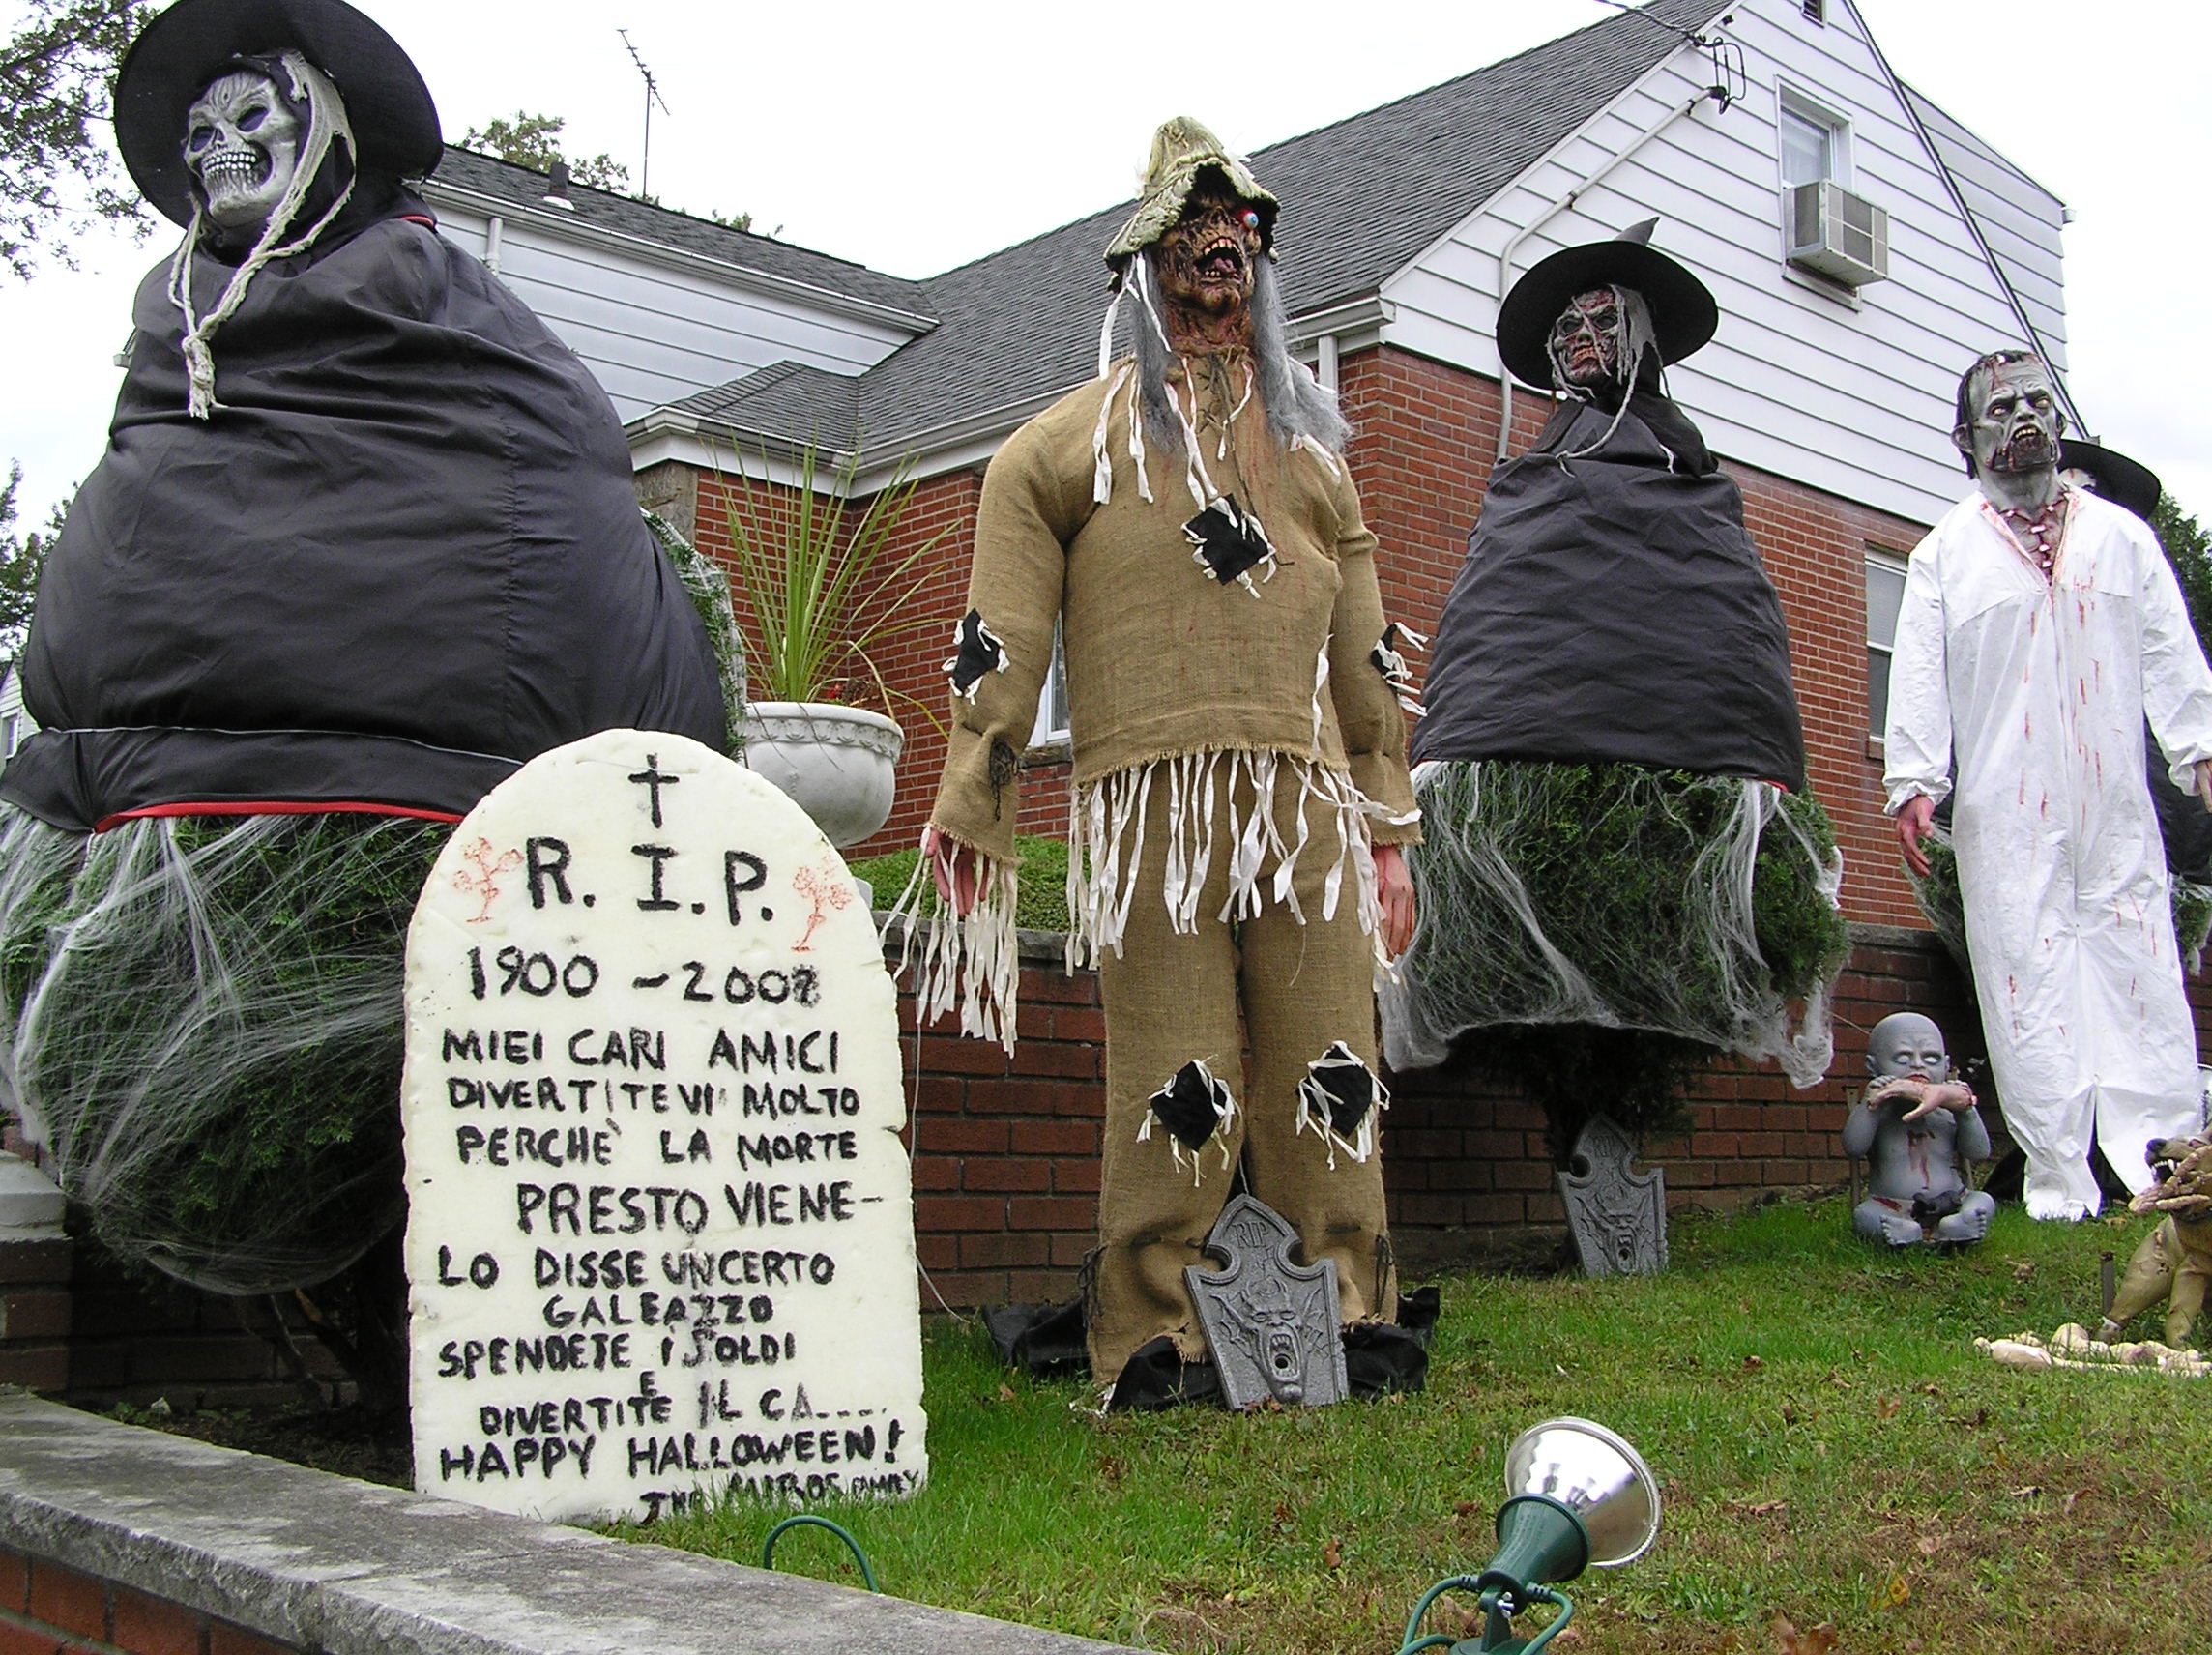 Creepy Halloween Costumes 2011.JPG